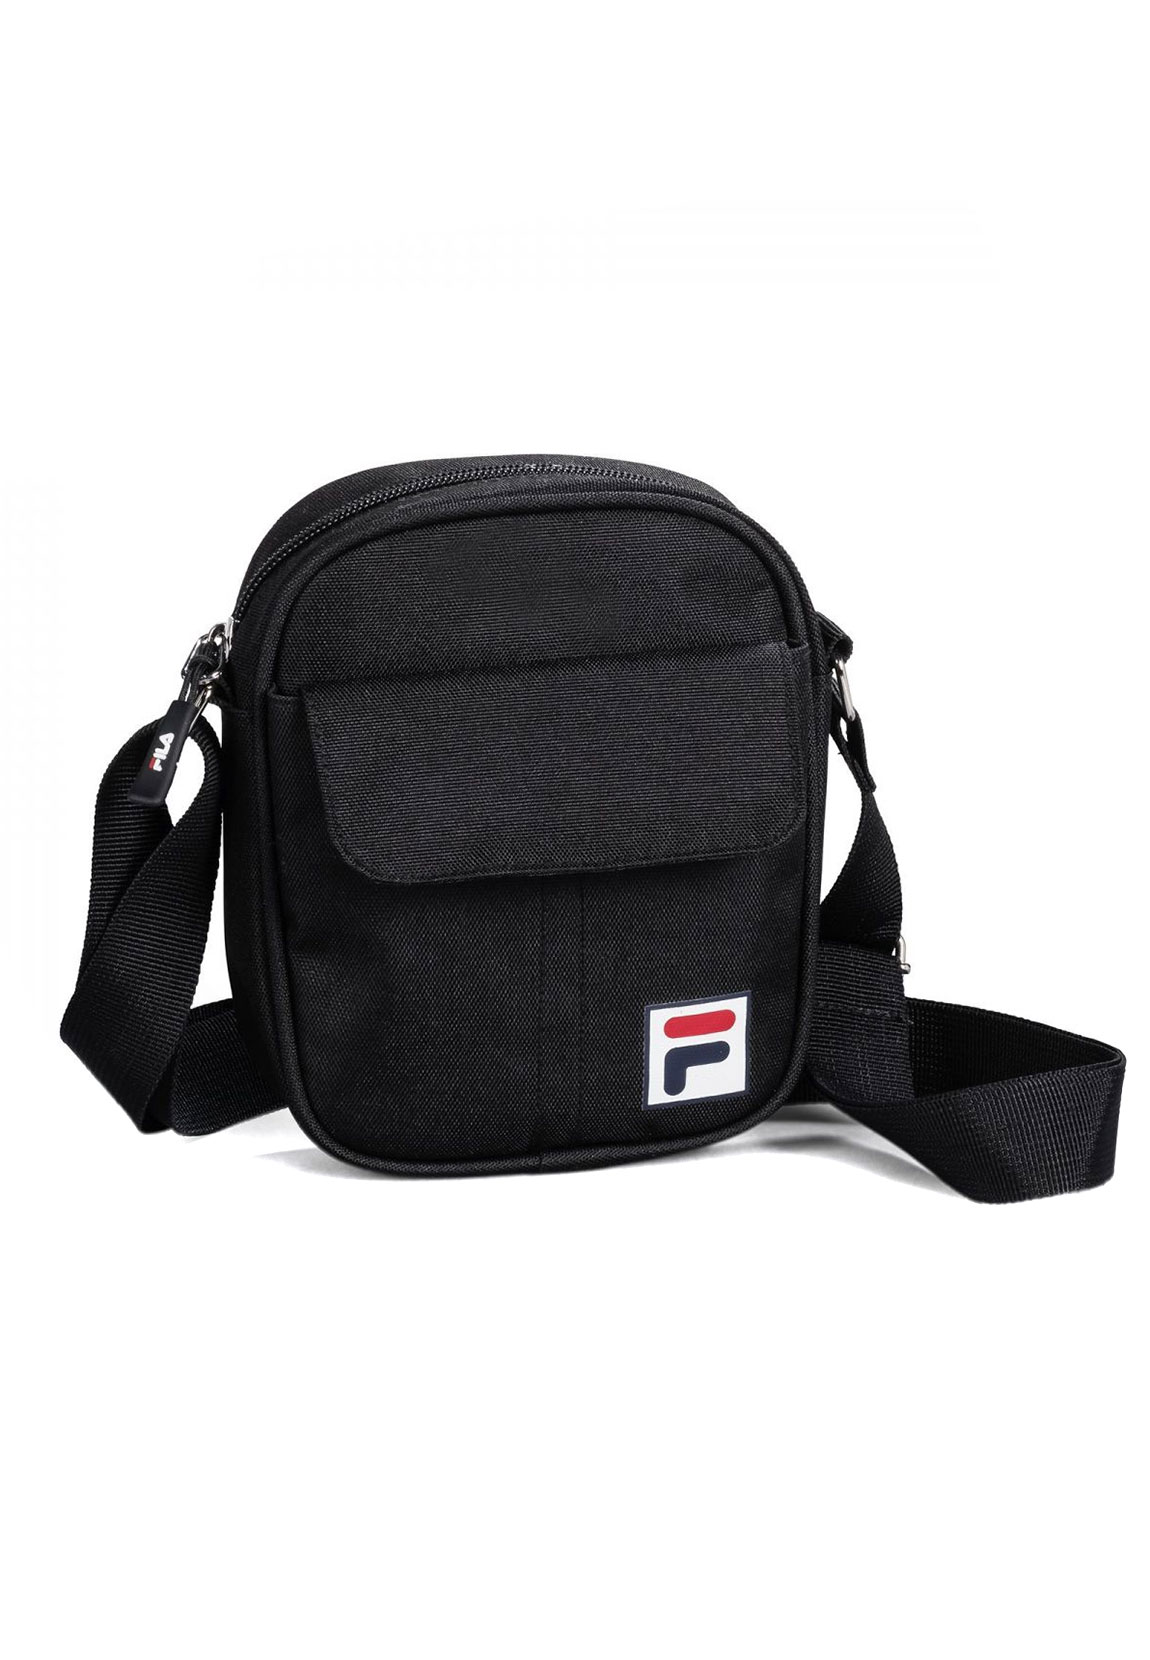 Fila Citybag PUSHER BAG MILAN 685046 002 Schwarz Black